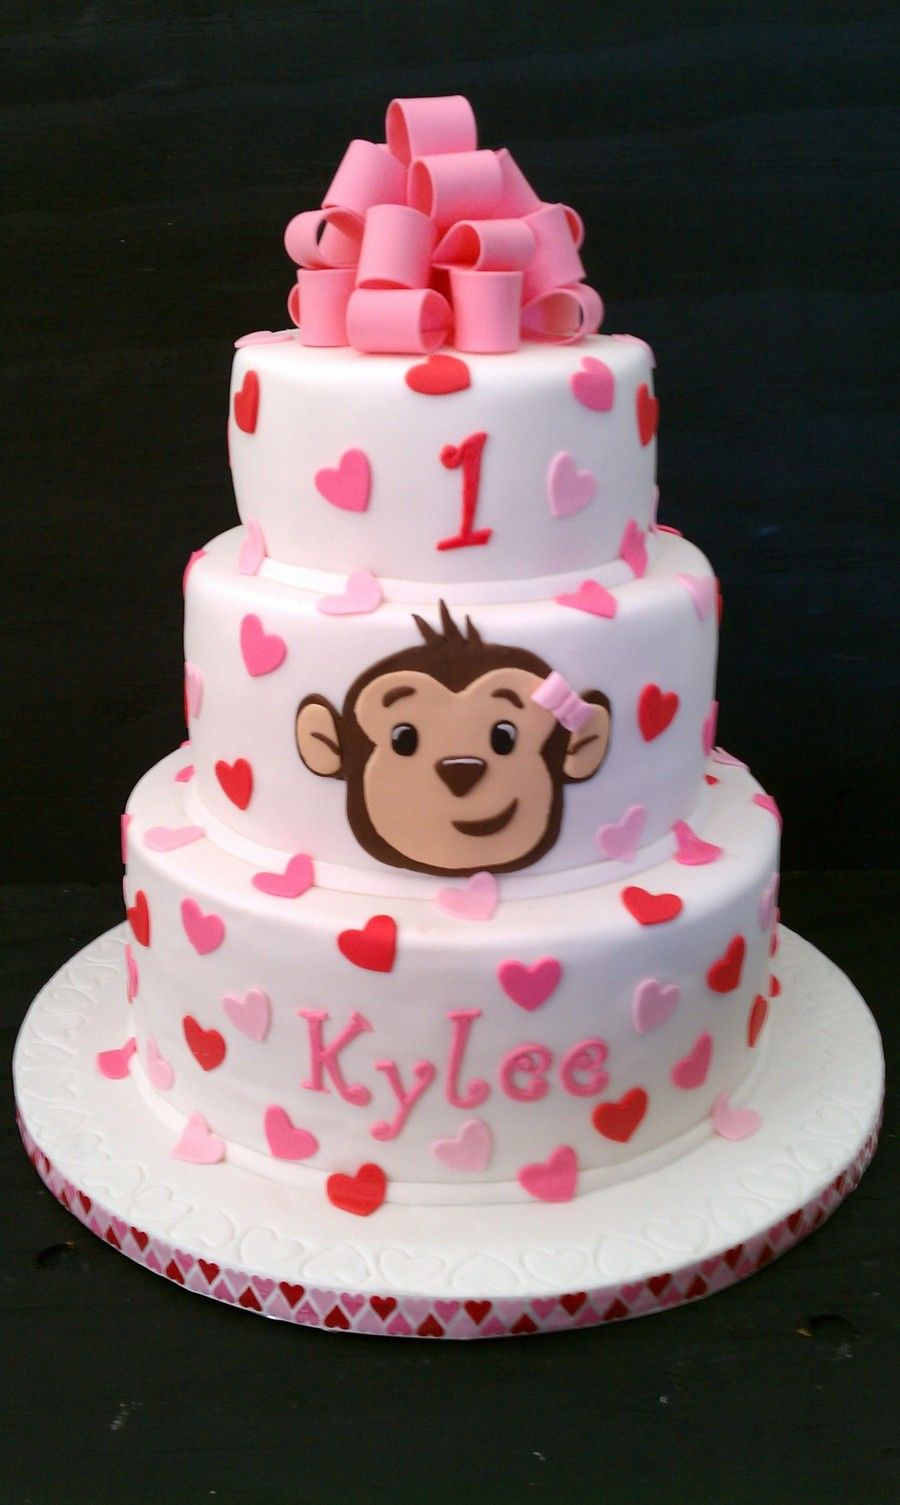 Kylee's 1St Birthday For a 1 year old birthday. Mom wanted